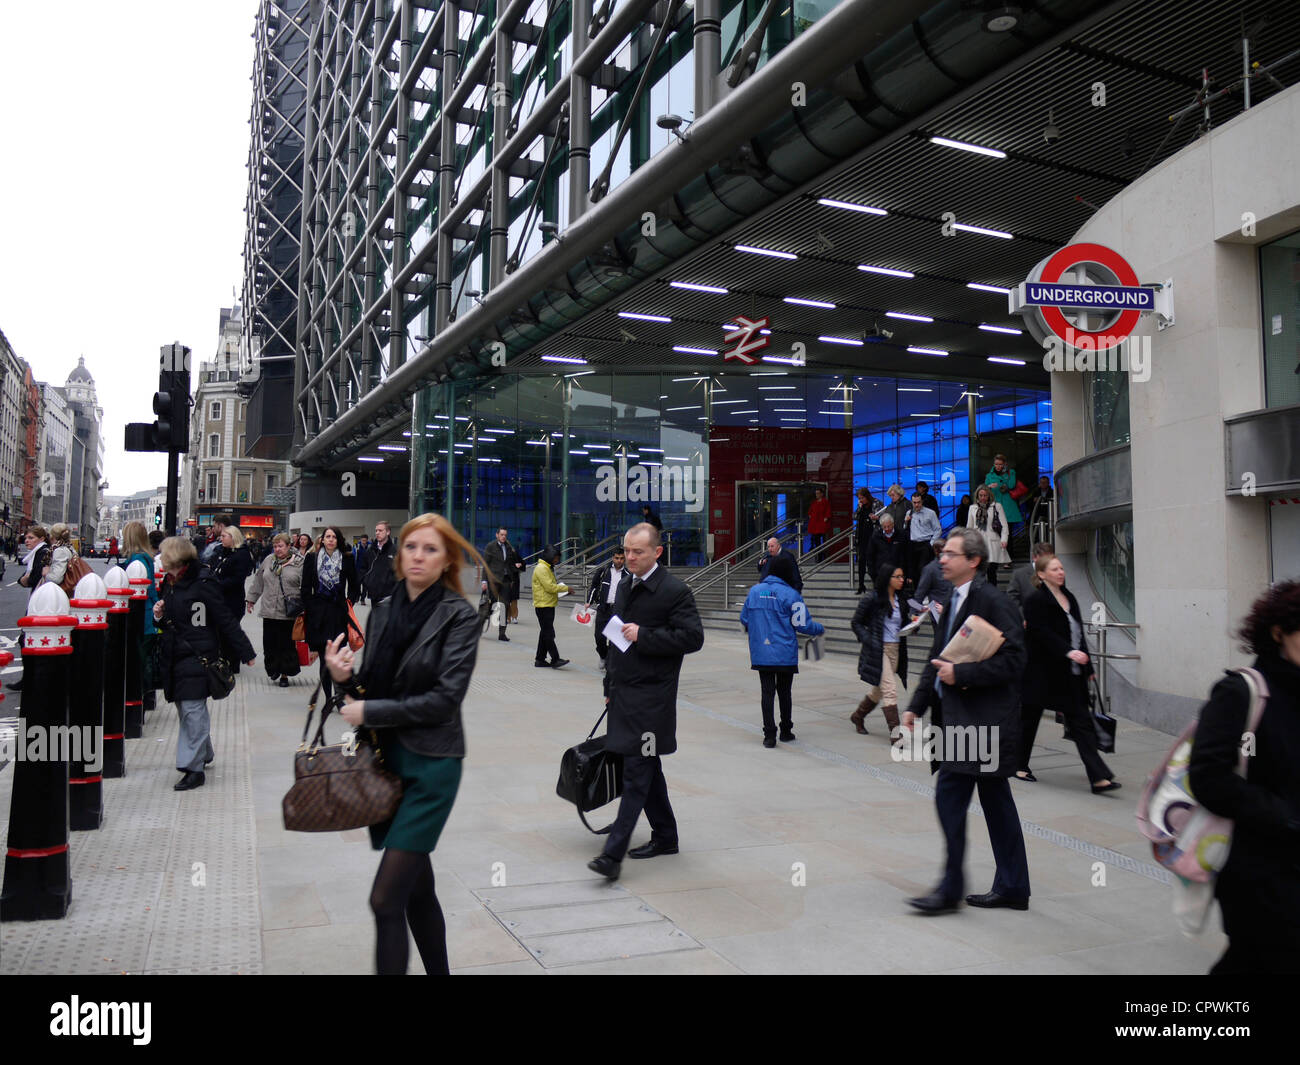 Cannon Street station entrance to railway station refurbished in 2012 - Stock Image